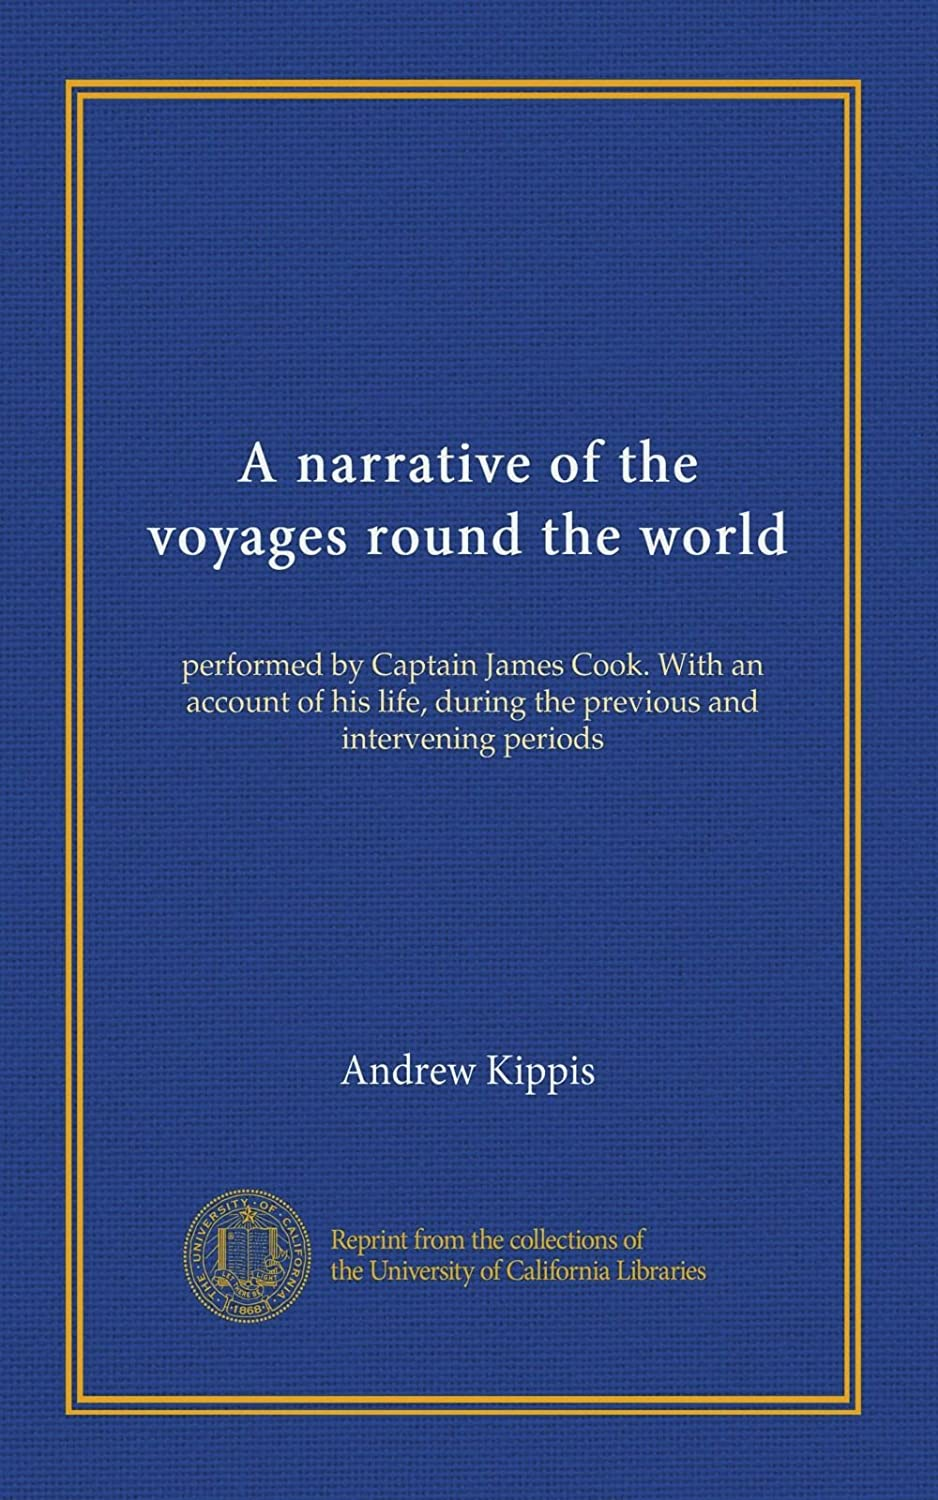 A narrative of the voyages round the world: performed by Captain James Cook. With an account of his life, during the previous and intervening periods